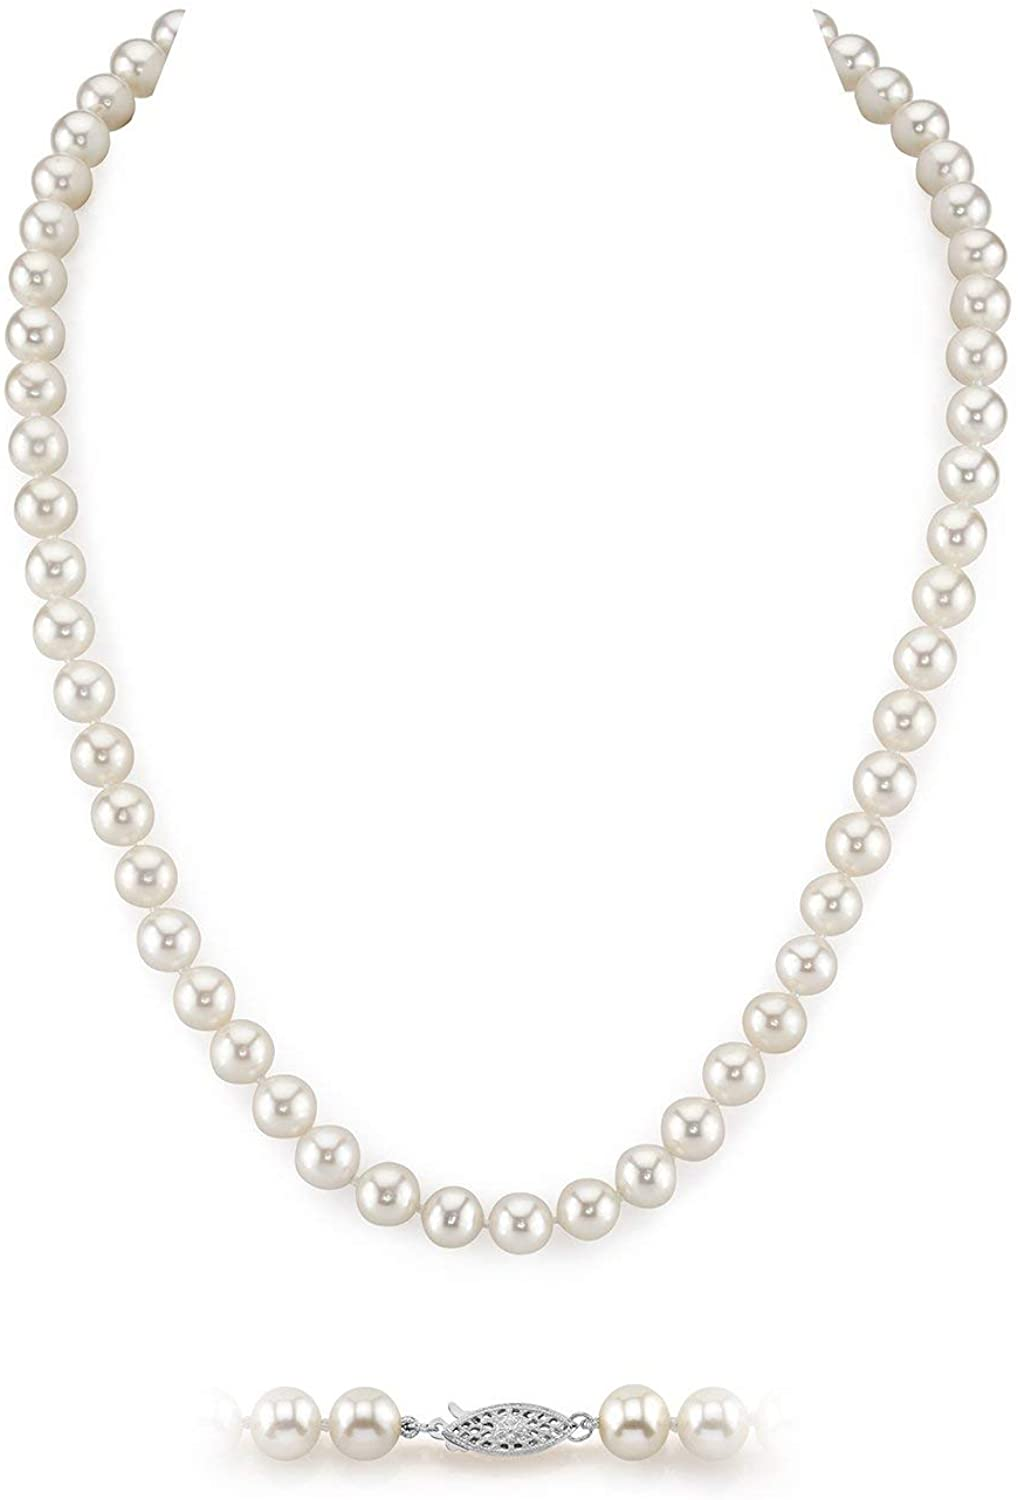 White Freshwater Cultured Pearl Necklace for Women in AAA Quality - THE PEARL SOURCE